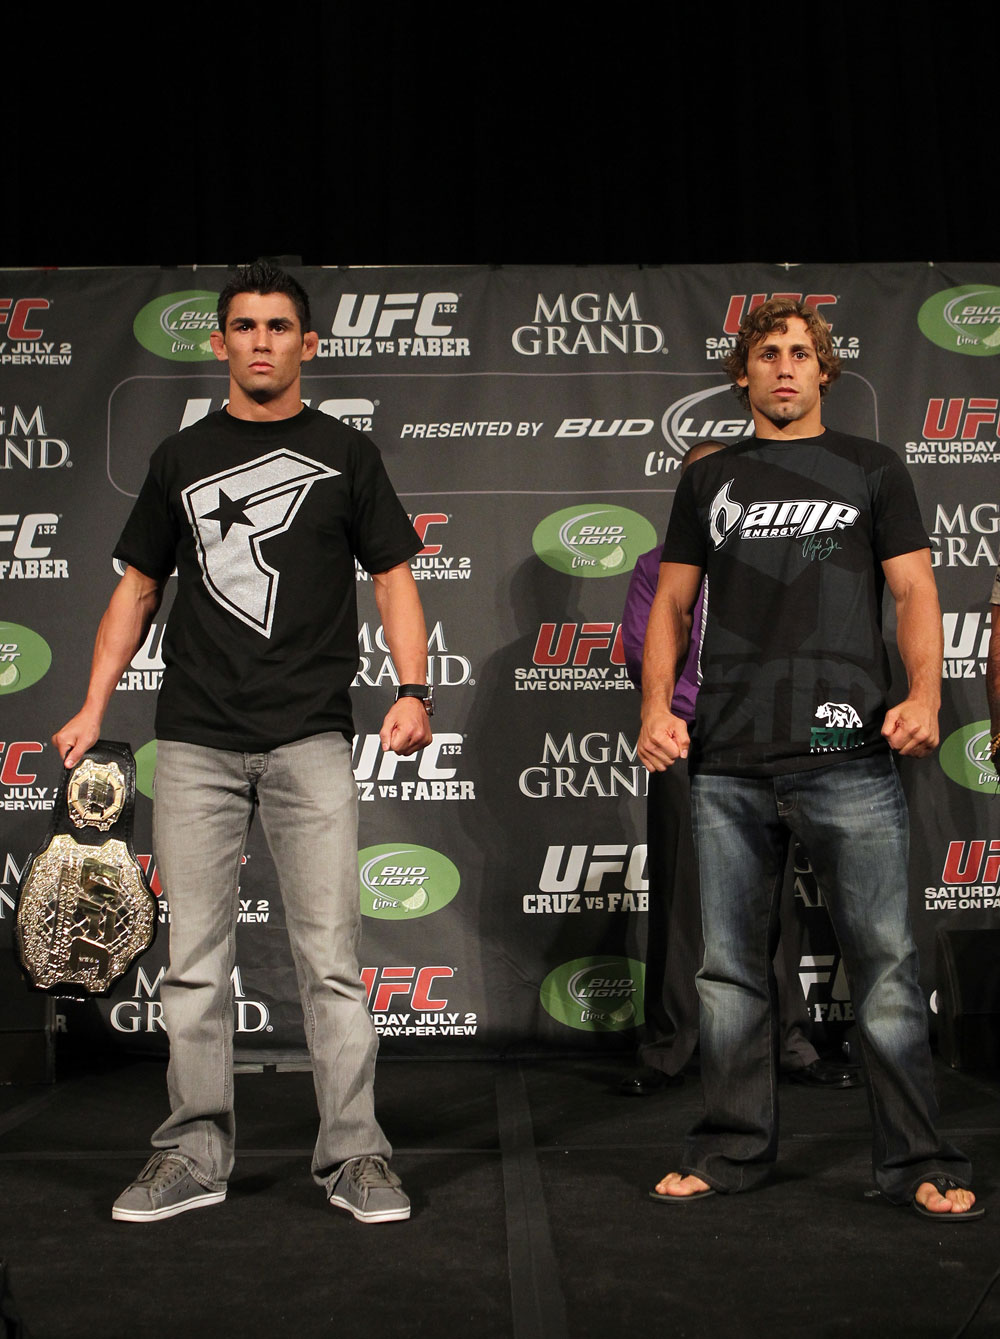 UFC 132 Pre-fight Press Conference: Dominick Cruz vs. Urijah Faber